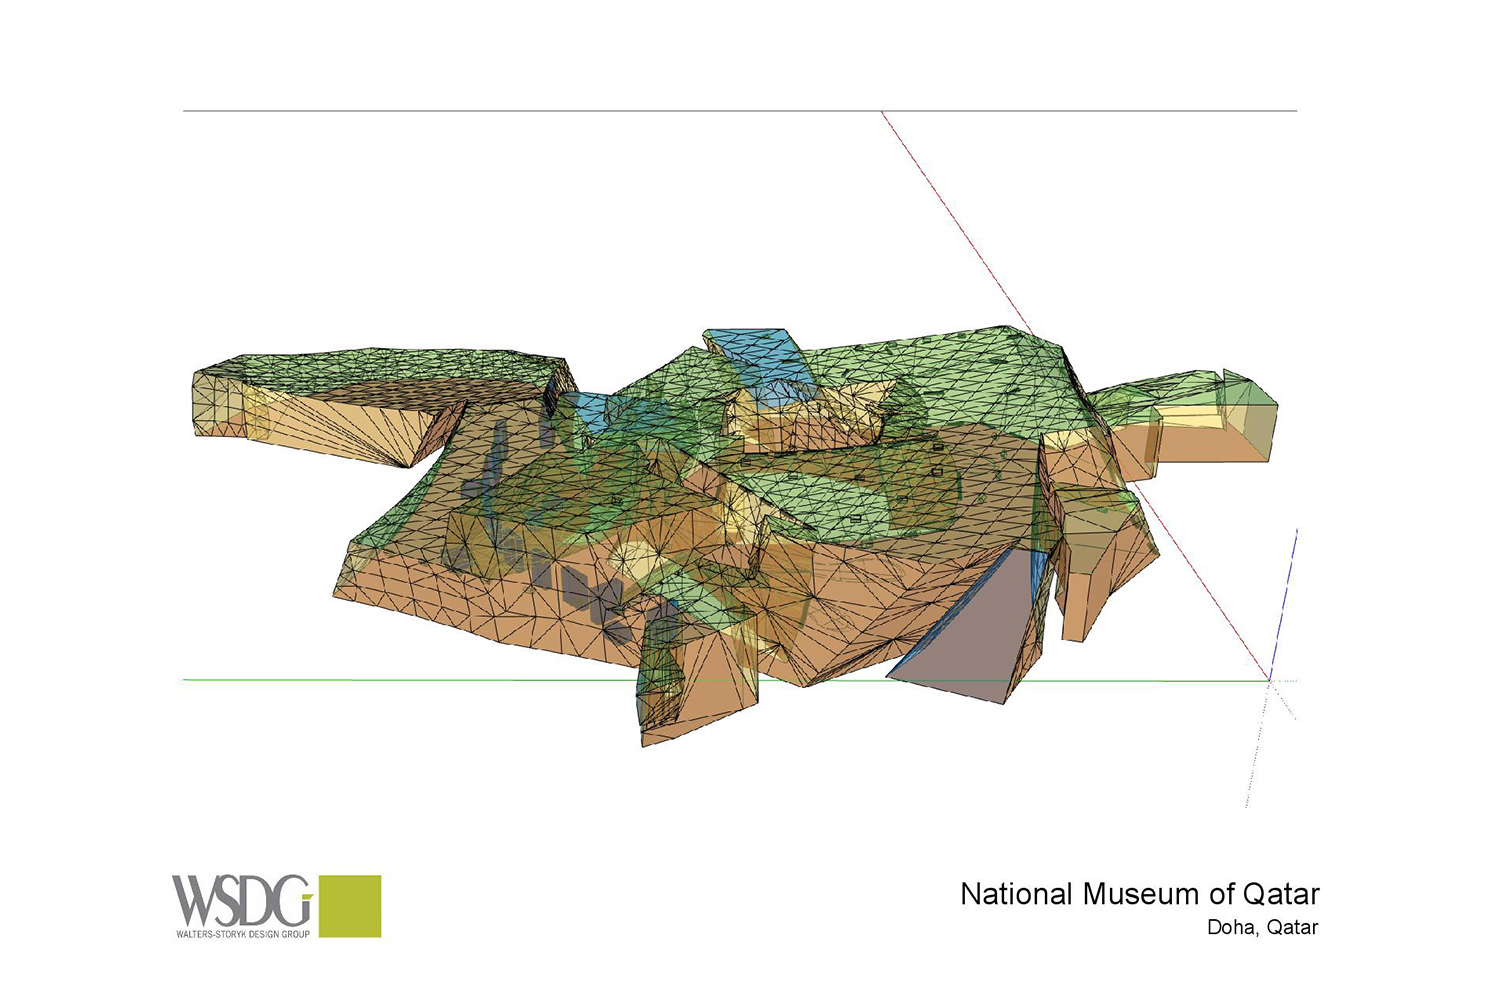 The National Museum of Qatar. WSDG was contracted to create a 3-D acoustic model of the space and make recommendations regarding appropriate speaker usage and placement. Acoustic 3D Model Drawing 3.